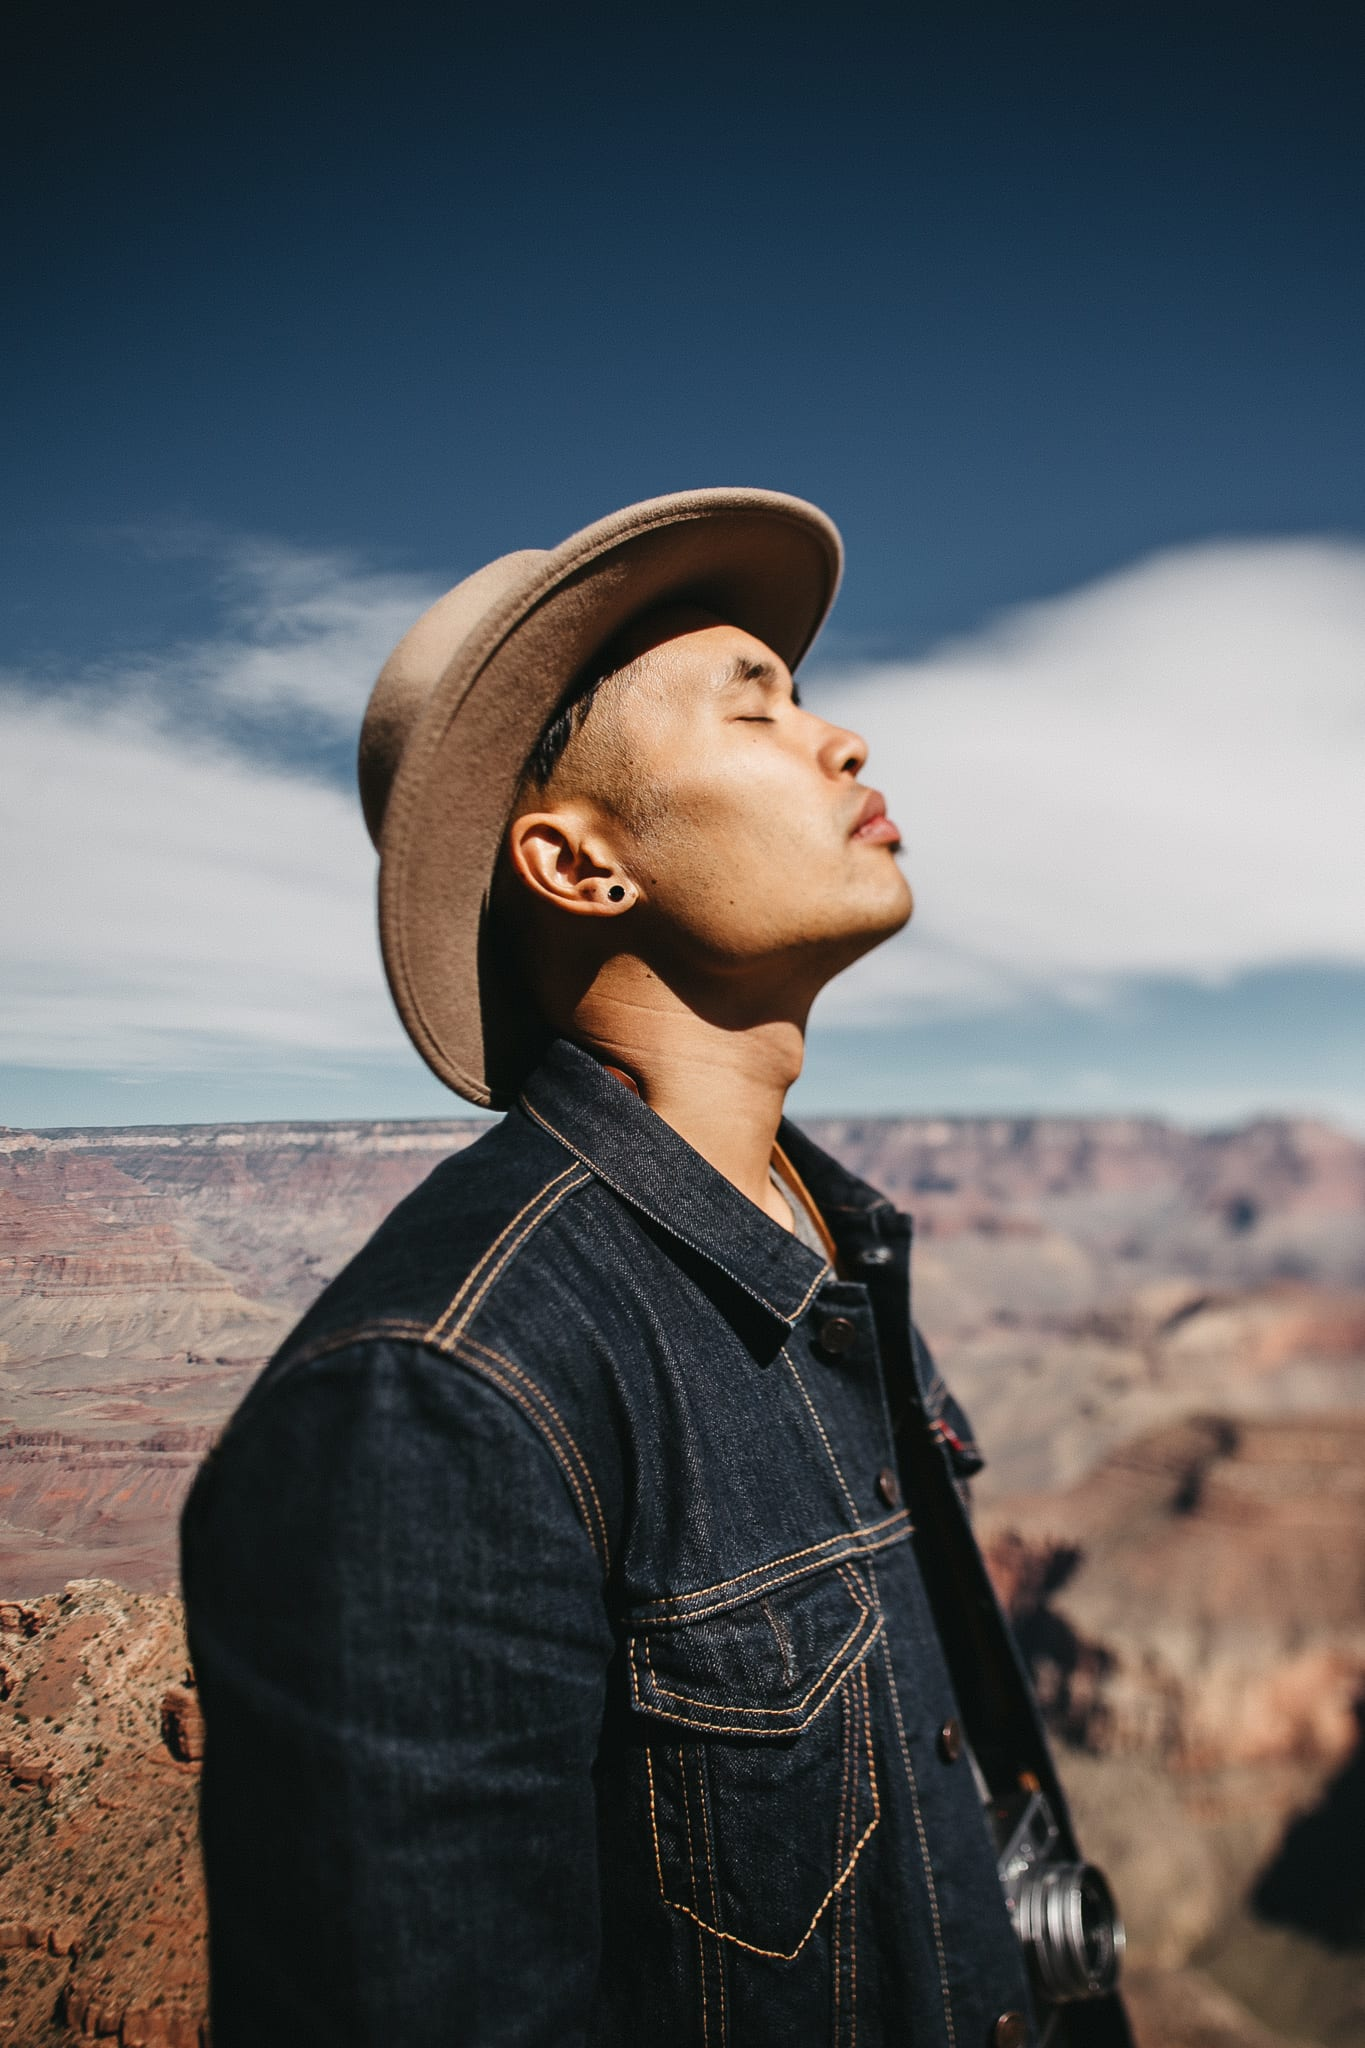 jc1-grand-canyon-arizona-lifestyle-portrait-photographer-9